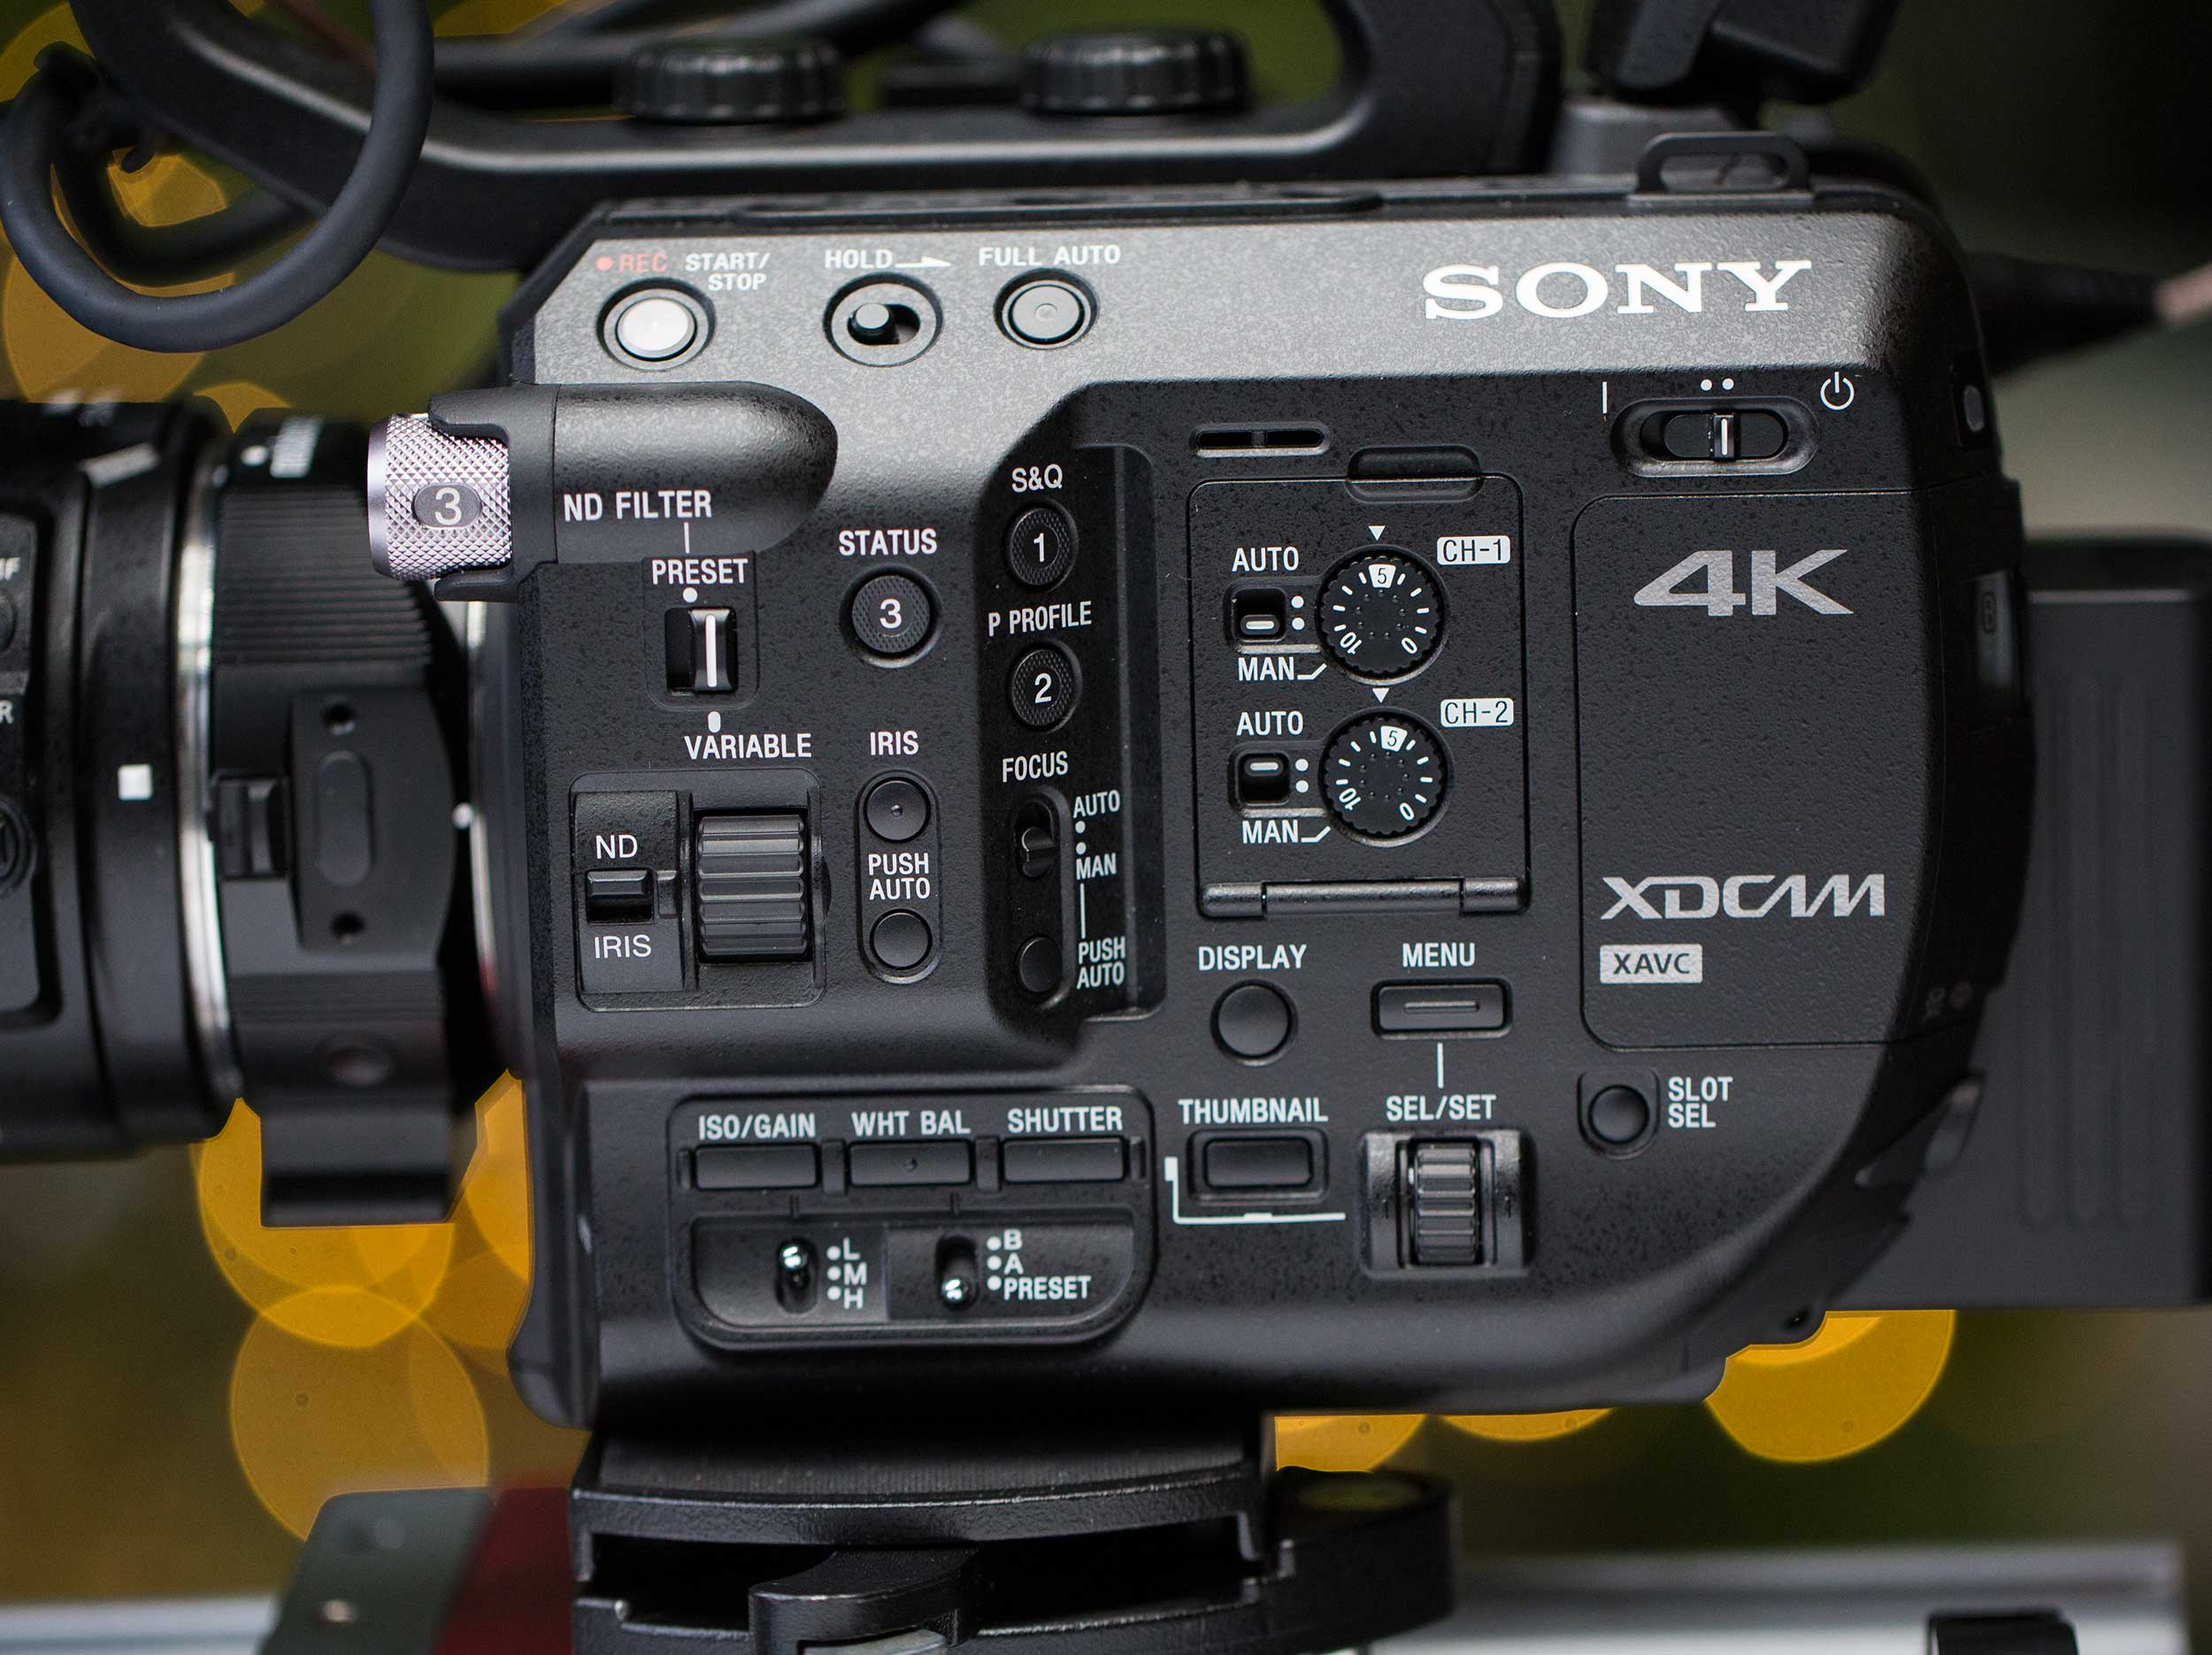 Digital camcorder and camera buyers guide home | facebook.